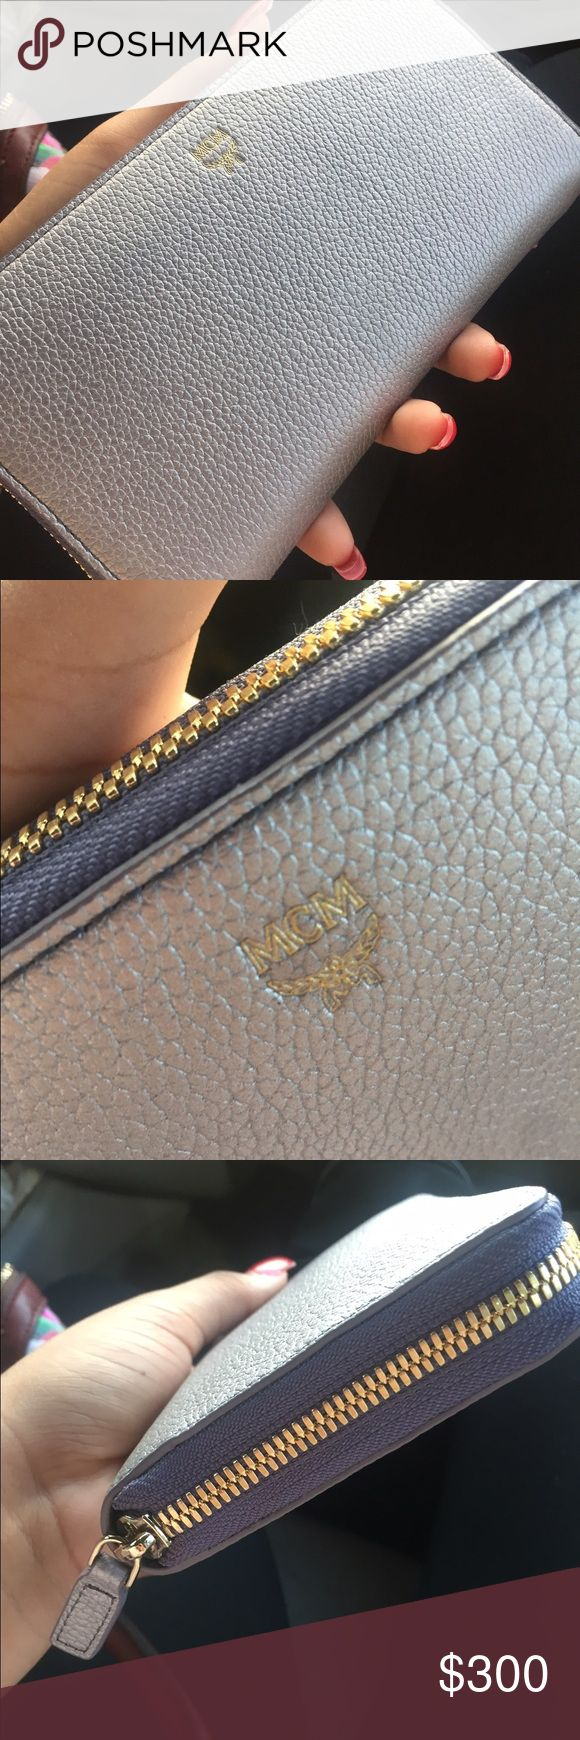 Mcm wallet Brand new with tags. Never used. Authentic. MCM Bags Wallets